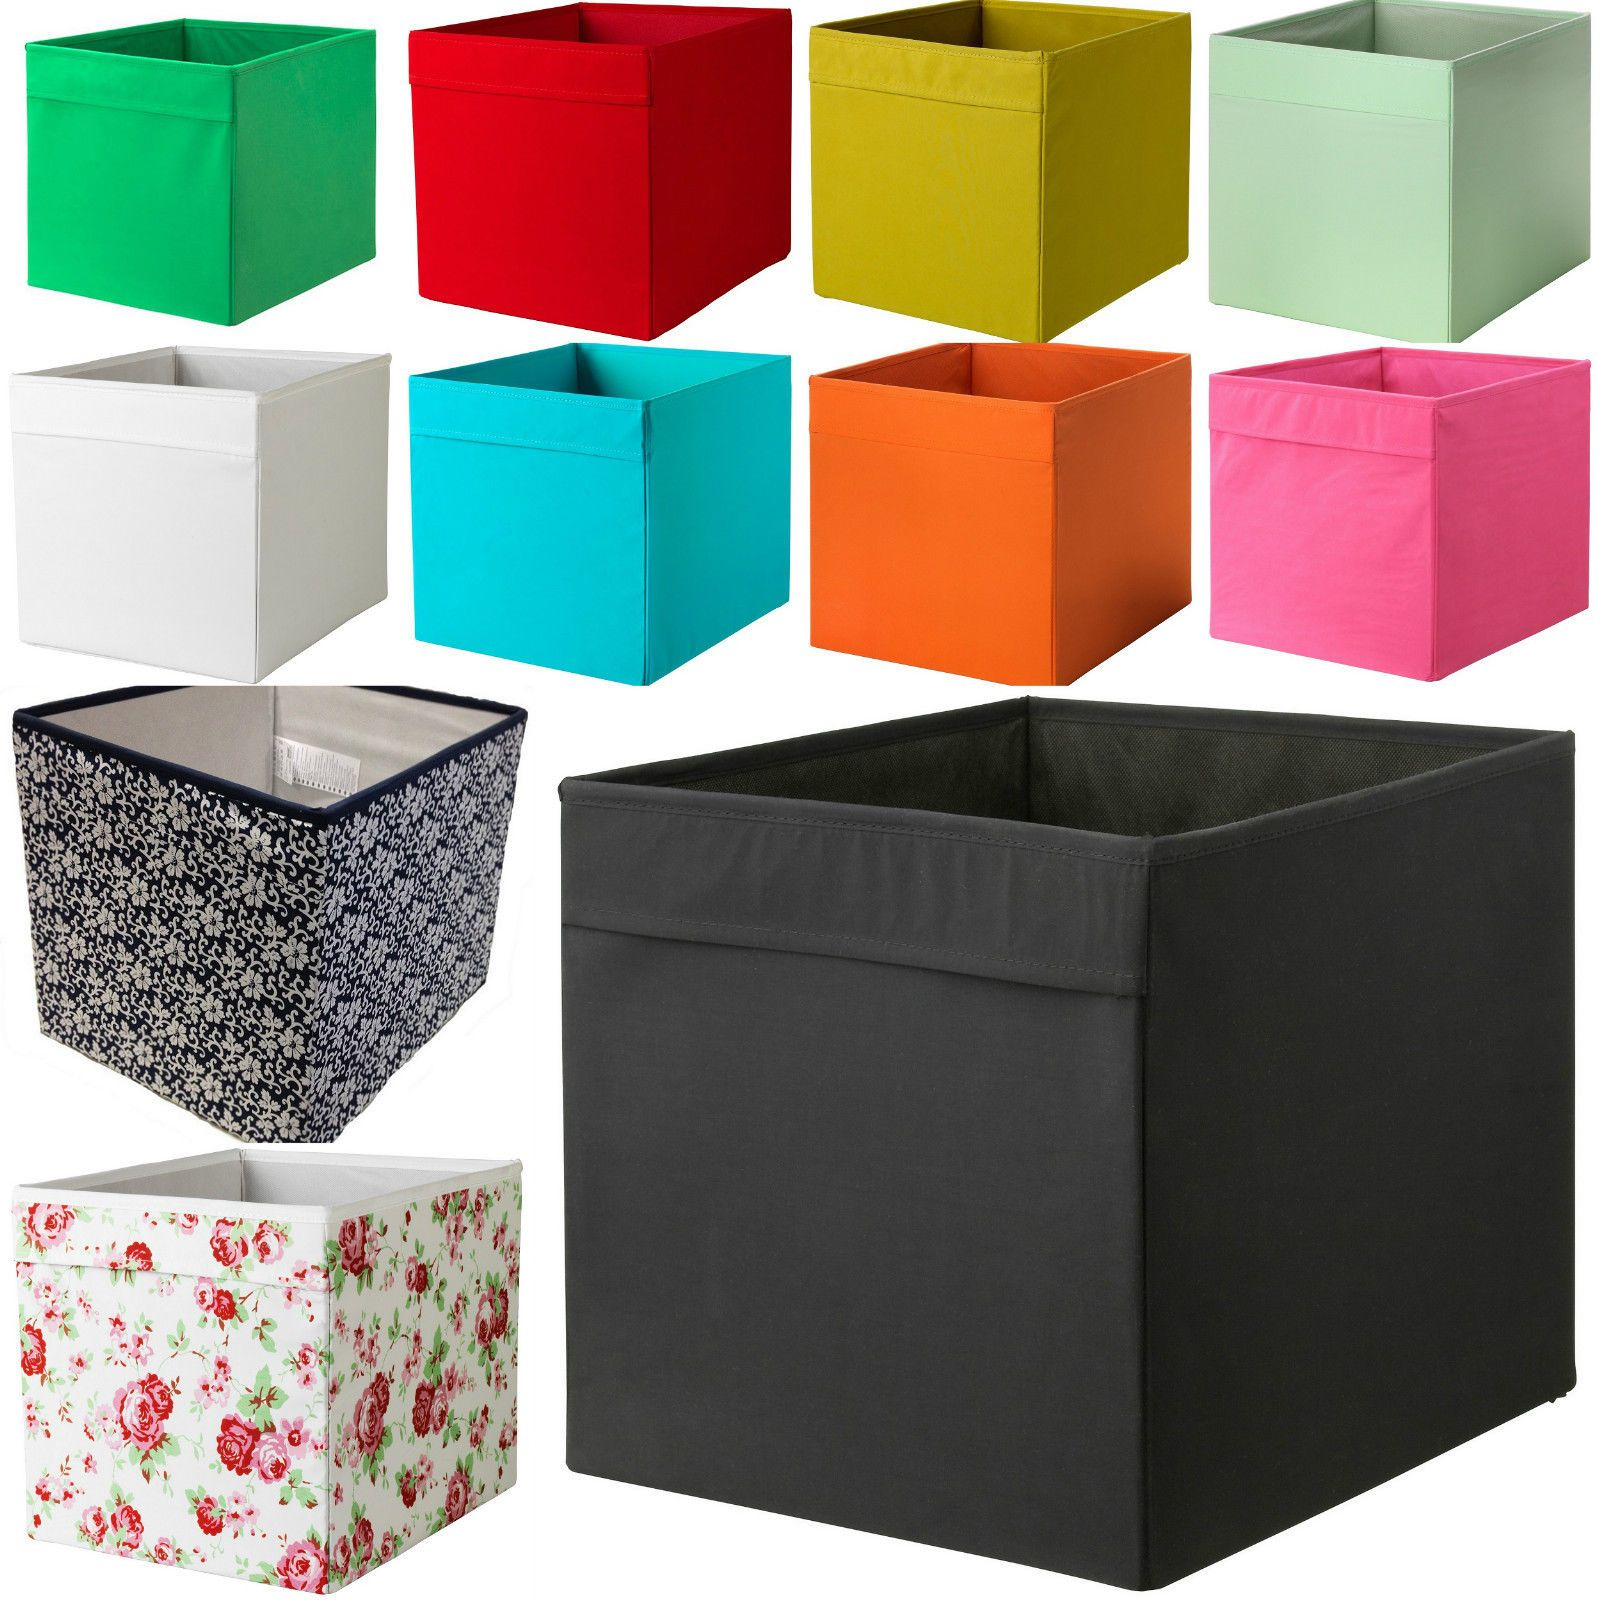 new ikea drona fabric storage box basket for expedit kallax shelf unit bookcase three 39 s a. Black Bedroom Furniture Sets. Home Design Ideas